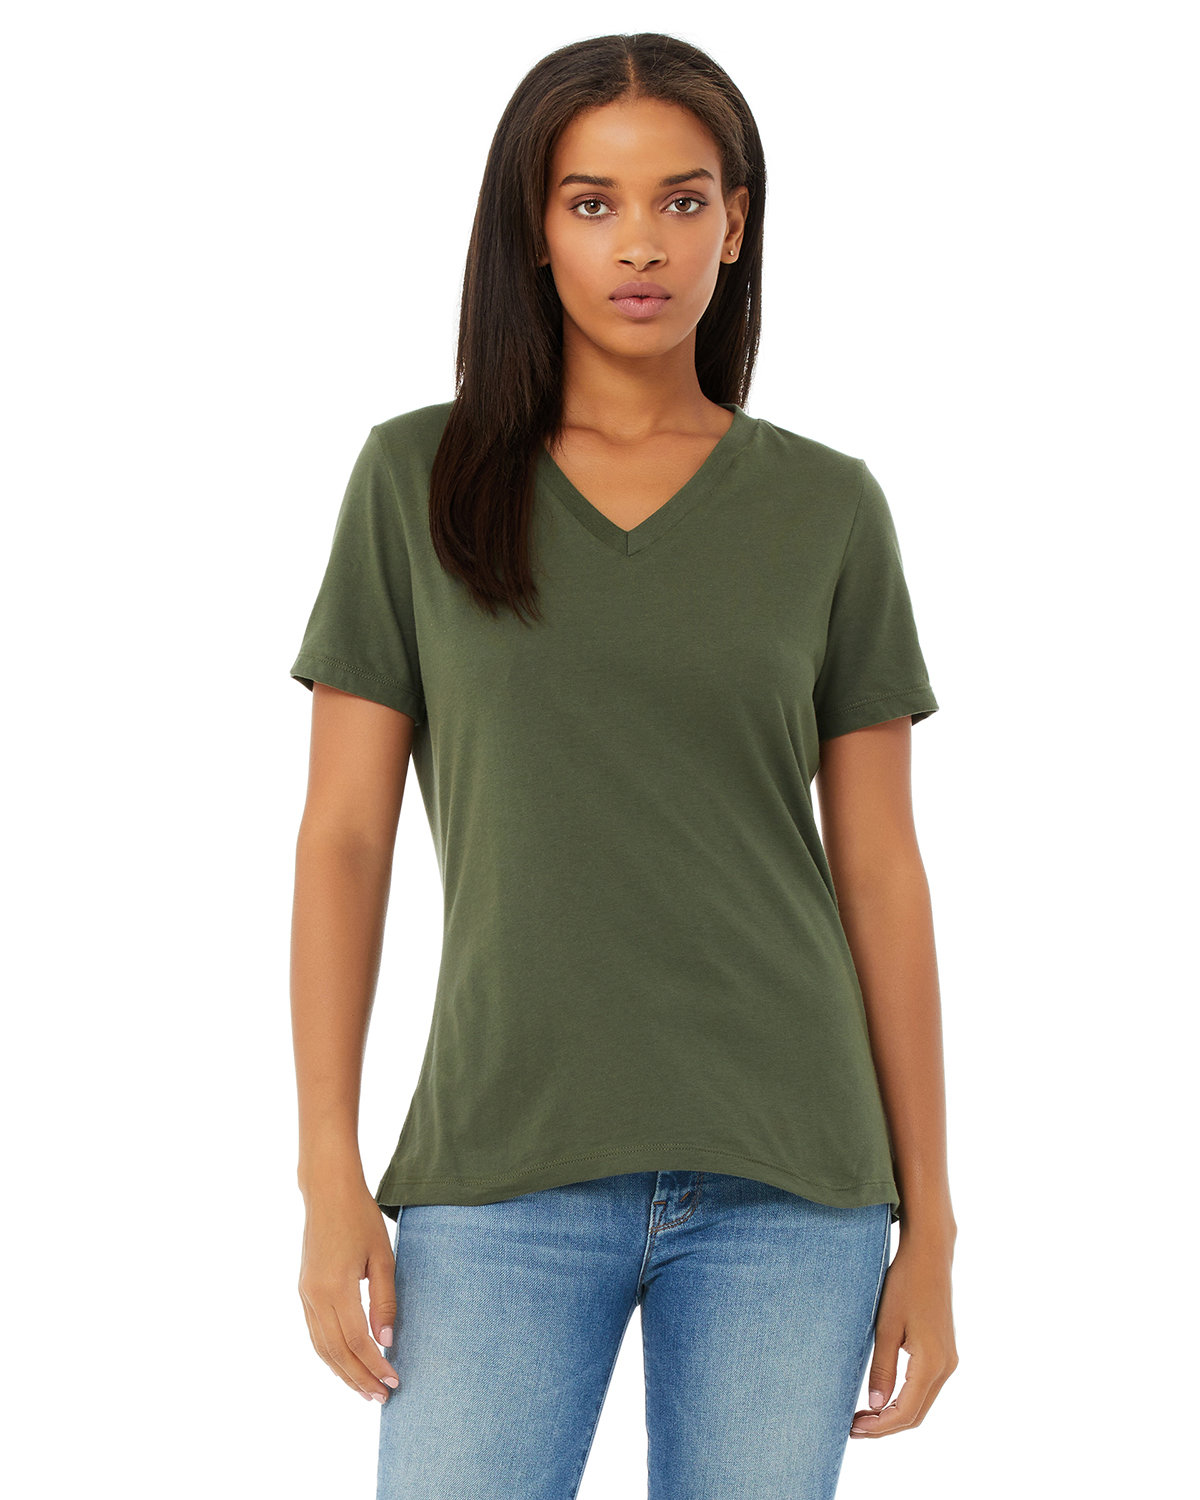 Bella + Canvas Ladies' Relaxed Jersey V-Neck T-Shirt MILITARY GREEN